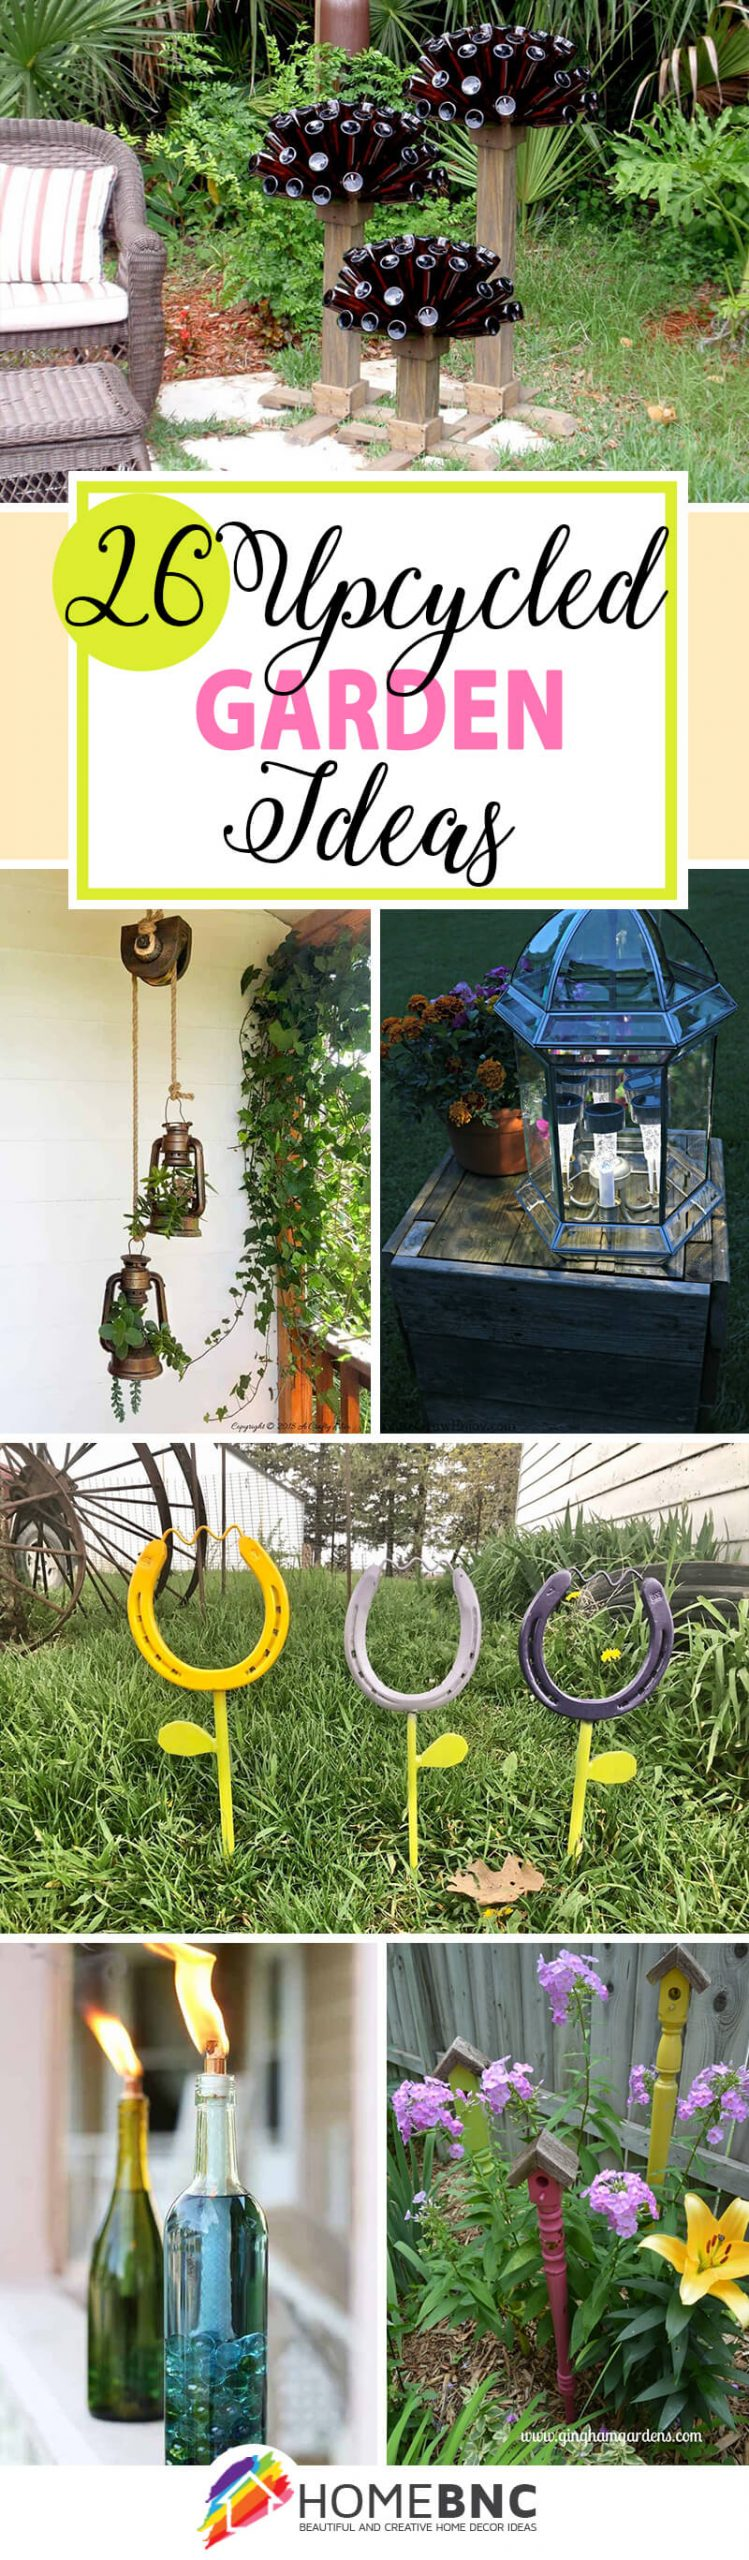 26 Best Upcycled Garden Ideas To Dress Up Your Outdoor Space In 2021